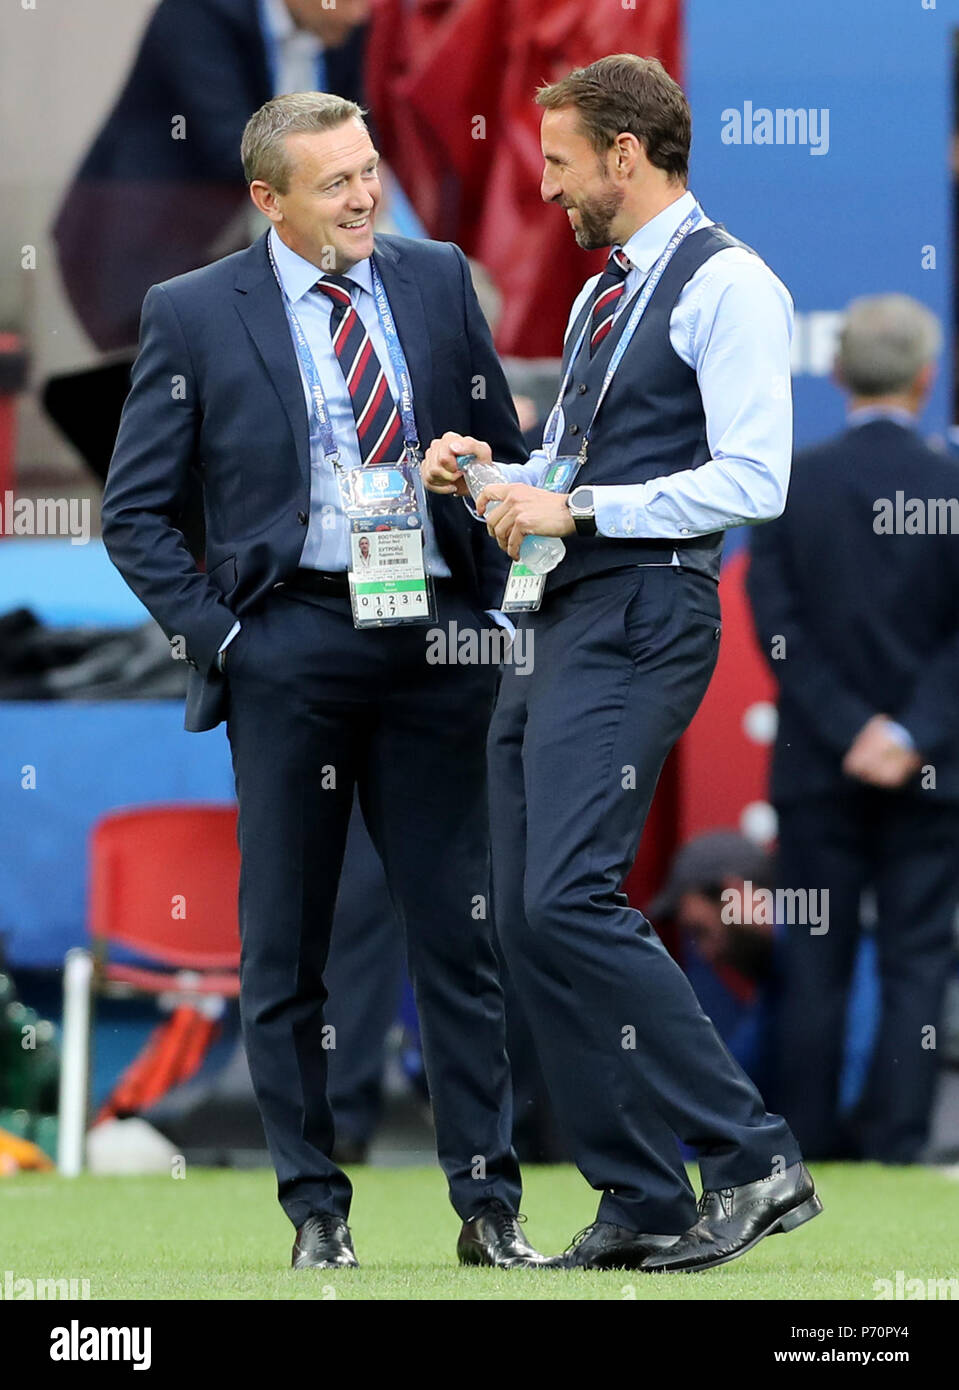 England manager Gareth Southgate (right) and Under 21's manager Tony Mowbray walk the pitch prior to the FIFA World Cup 2018, round of 16 match at the Spartak Stadium, Moscow. - Stock Image